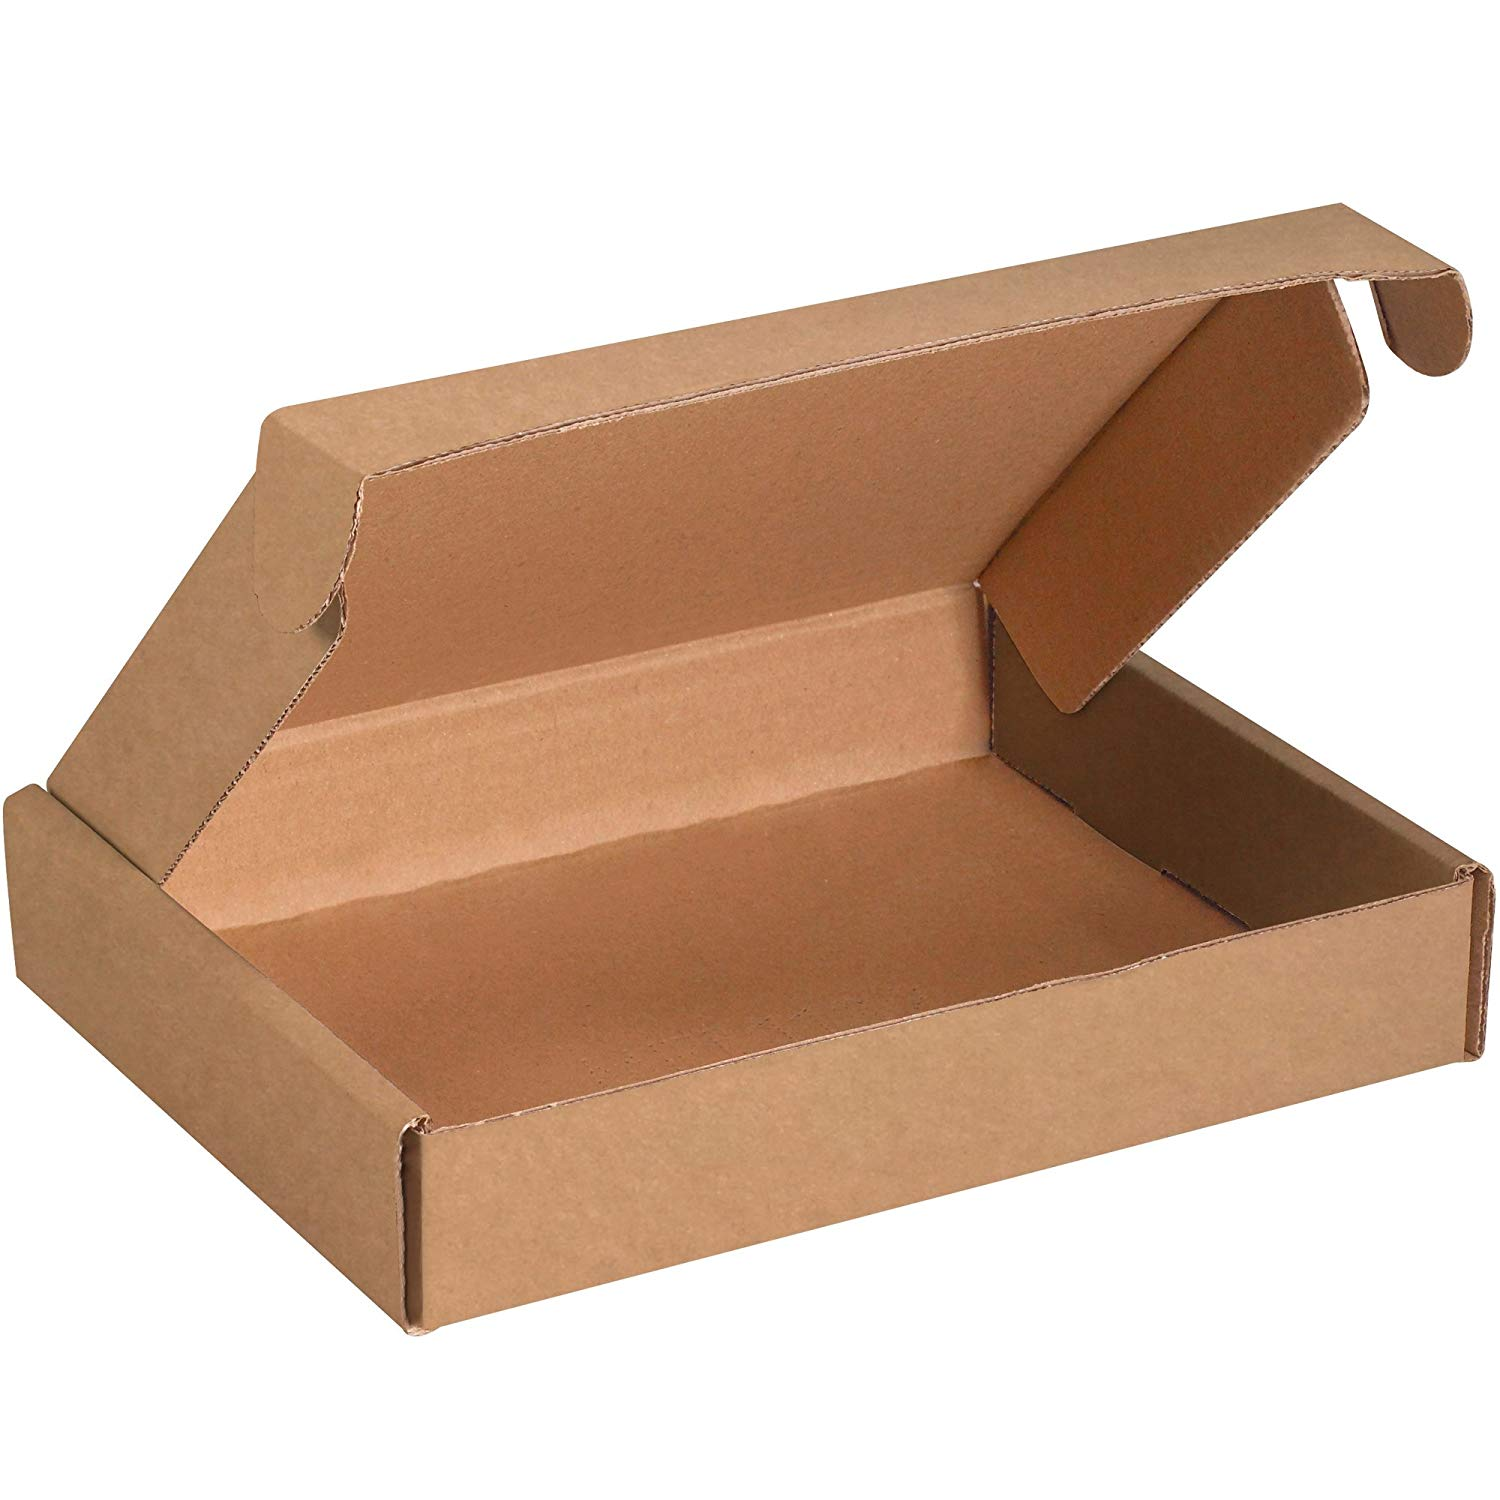 Boxes Fast BFMFL1183K Deluxe Literature Cardboard Mailers, 11 1/8 x 8 3/4 x 3 Inches, Corrugated Die-Cut Shipping Boxes, Large Brown Kraft Mailing Boxes (Pack of 50)